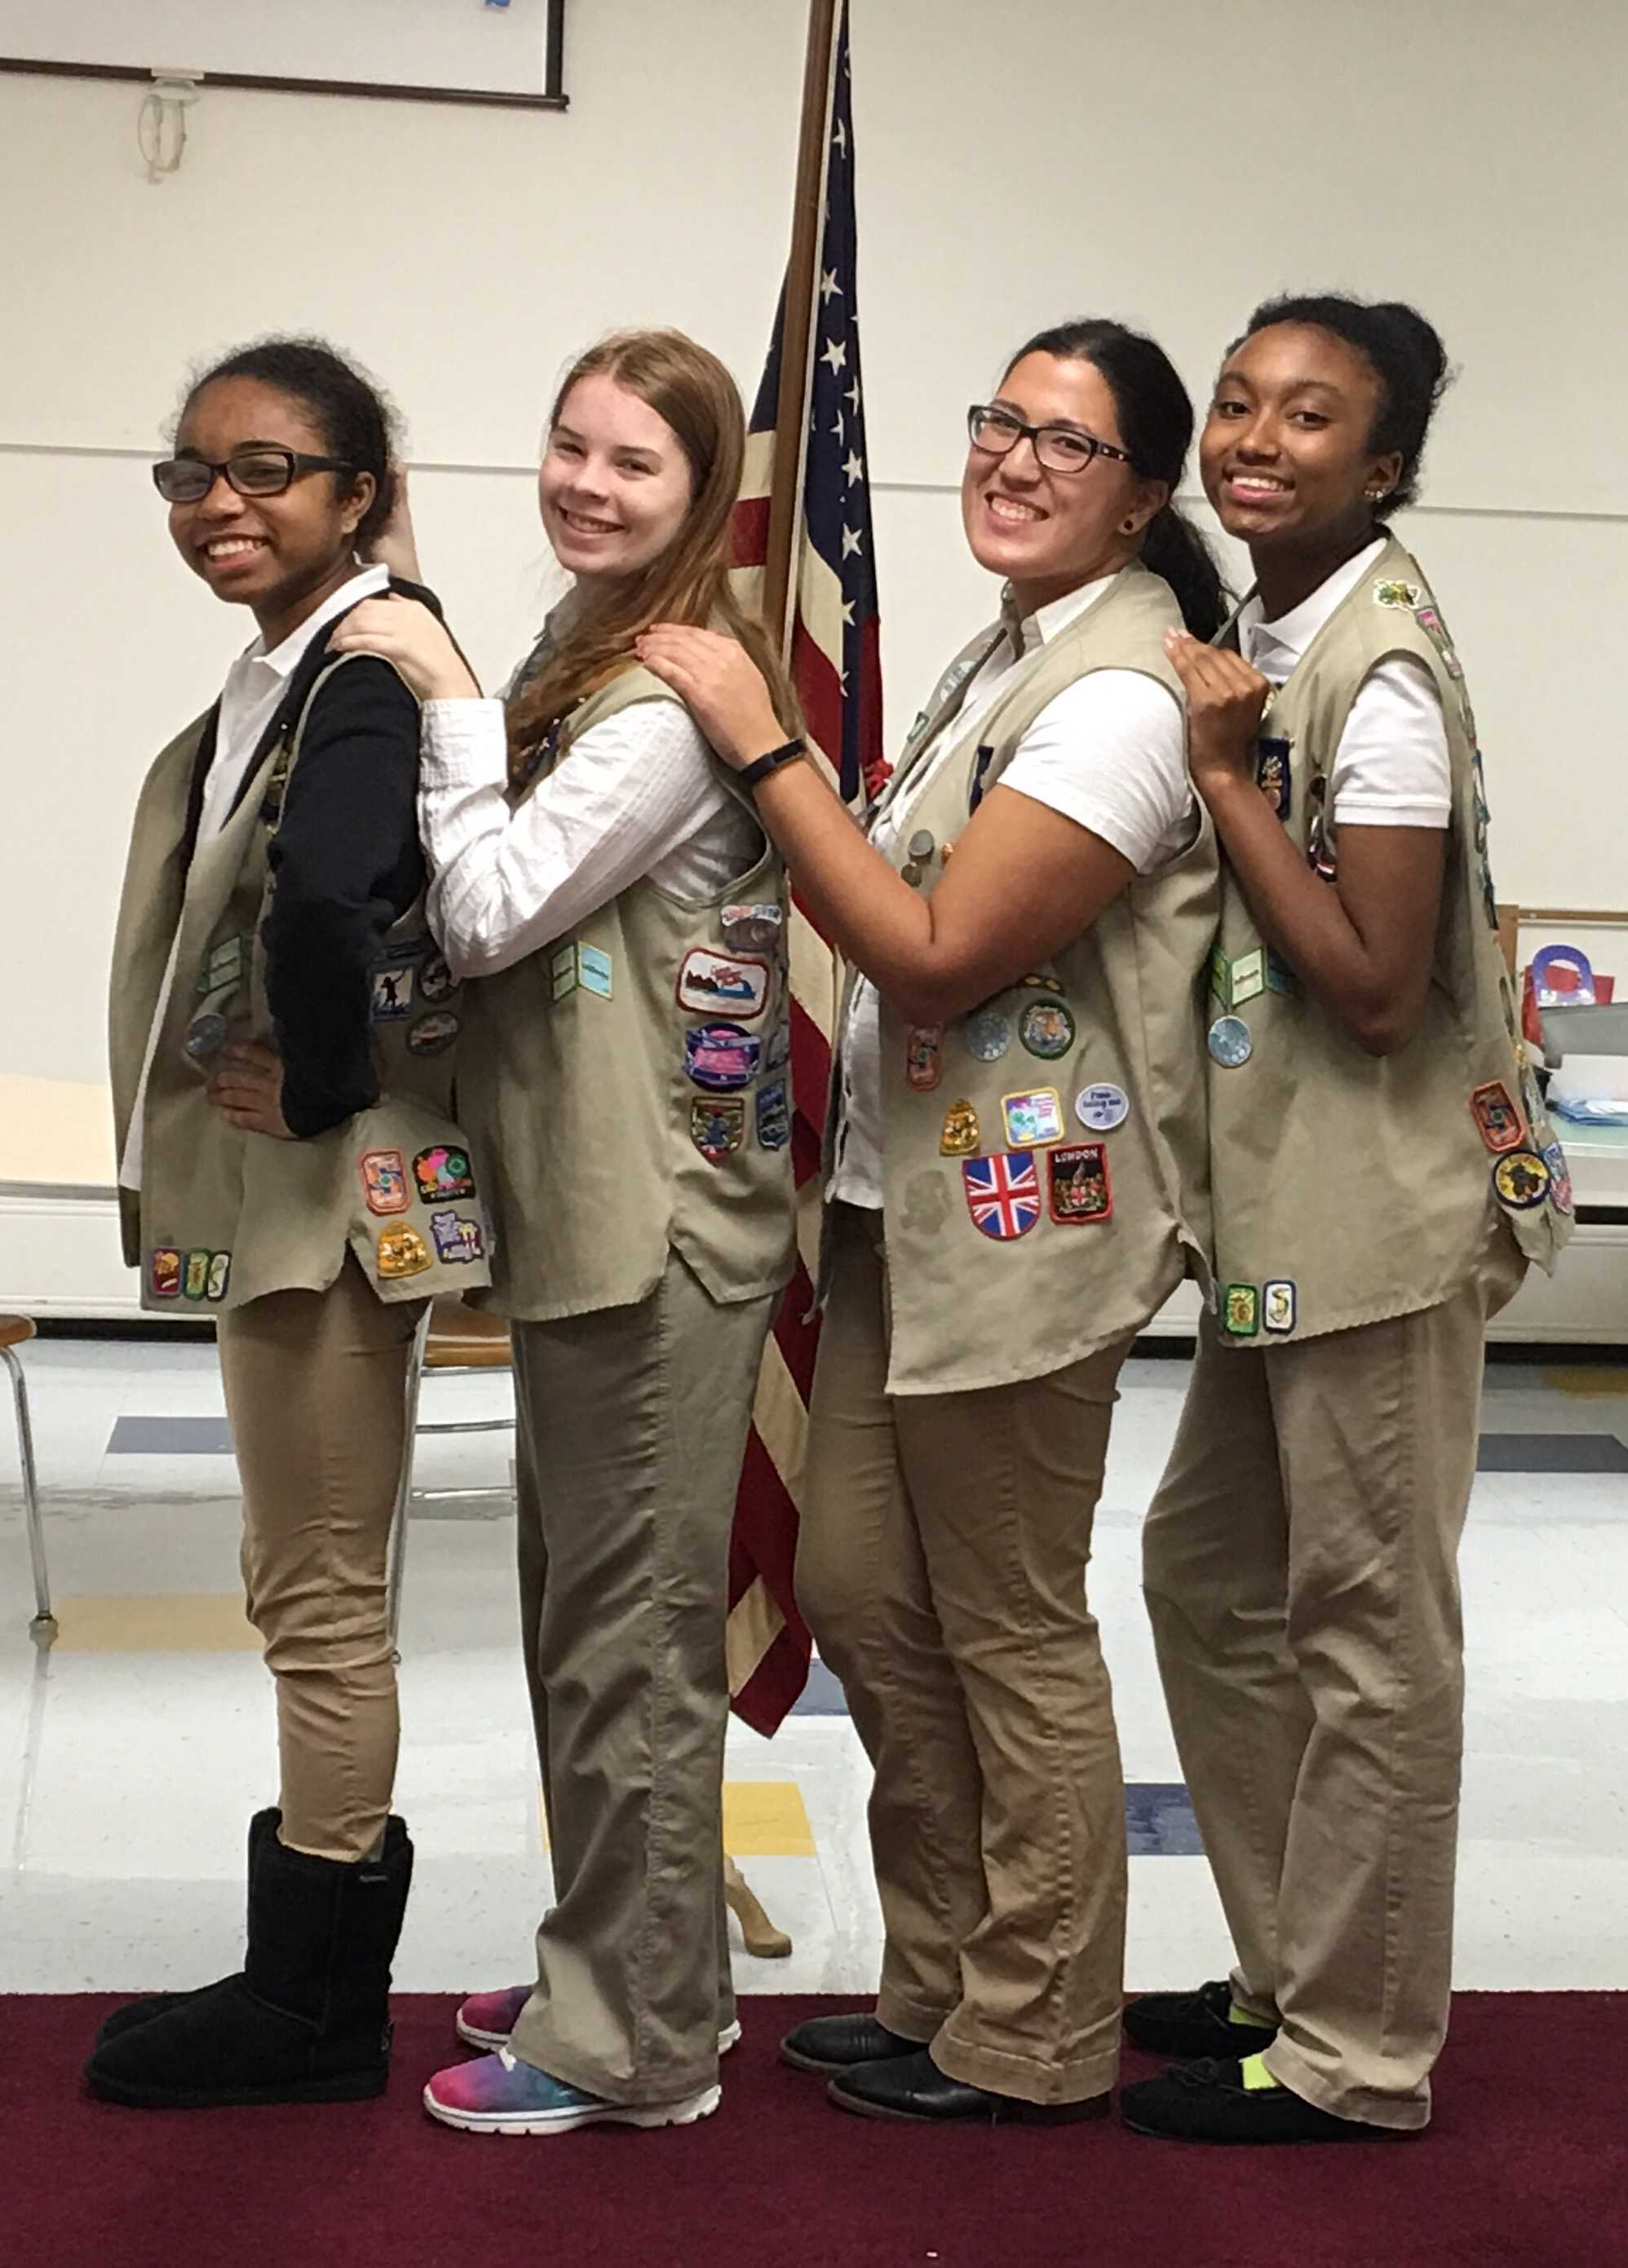 Lauren Wolfe, second from left, stands with three of her friends from Girl Scouts.